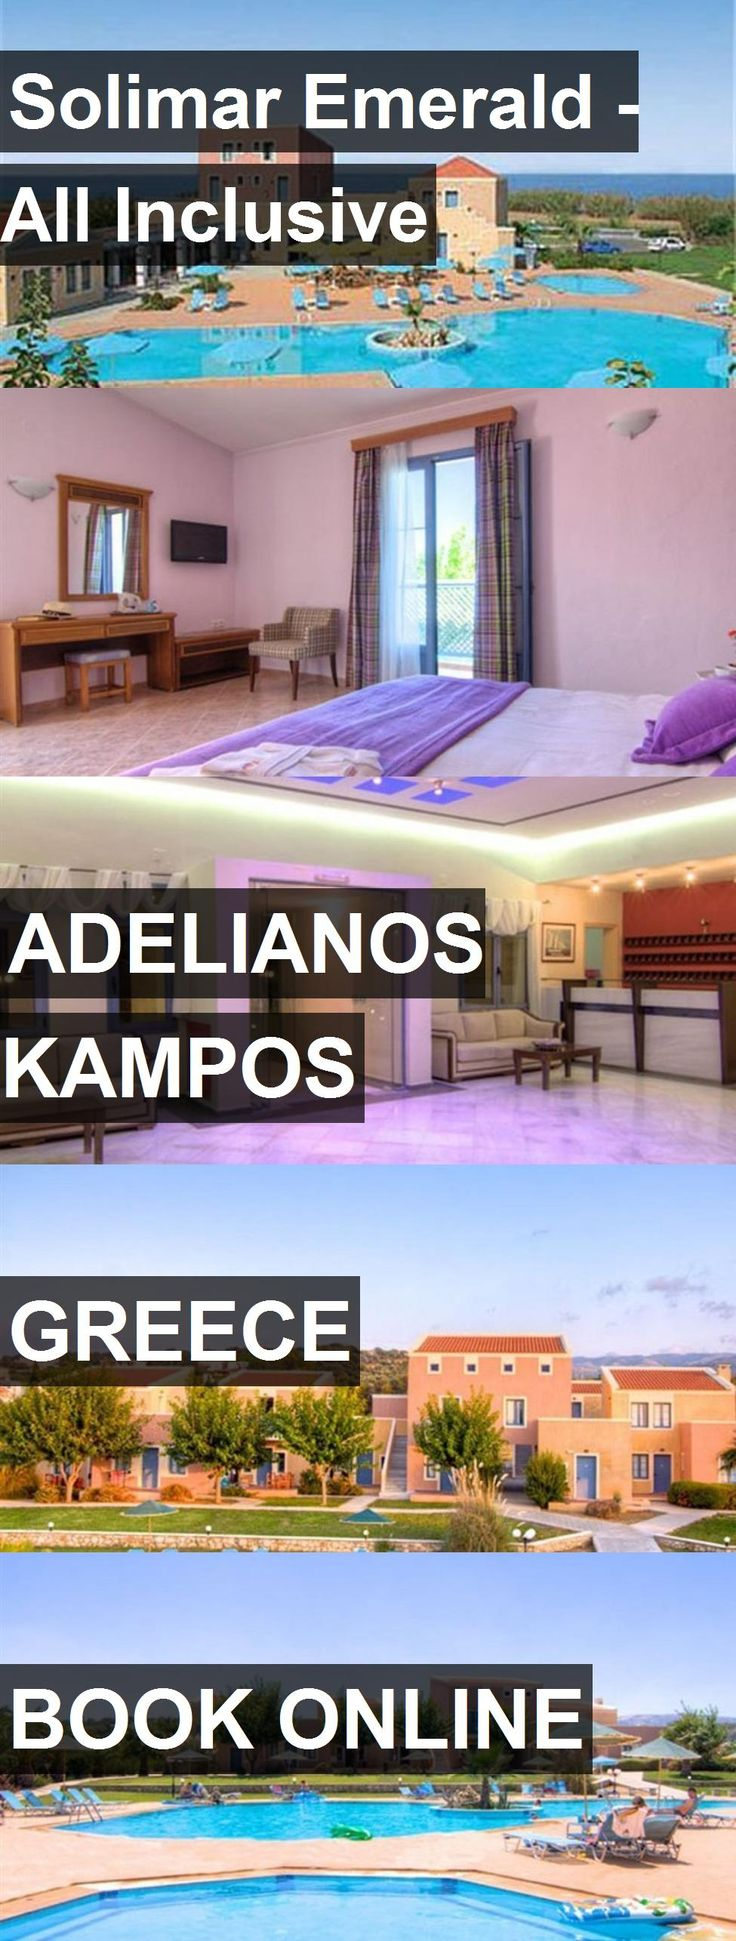 Hotel Solimar Emerald - AIl Inclusive in Adelianos Kampos, Greece. For more information, photos, reviews and best prices please follow the link. #Greece #AdelianosKampos #SolimarEmerald-AIlInclusive #hotel #travel #vacation